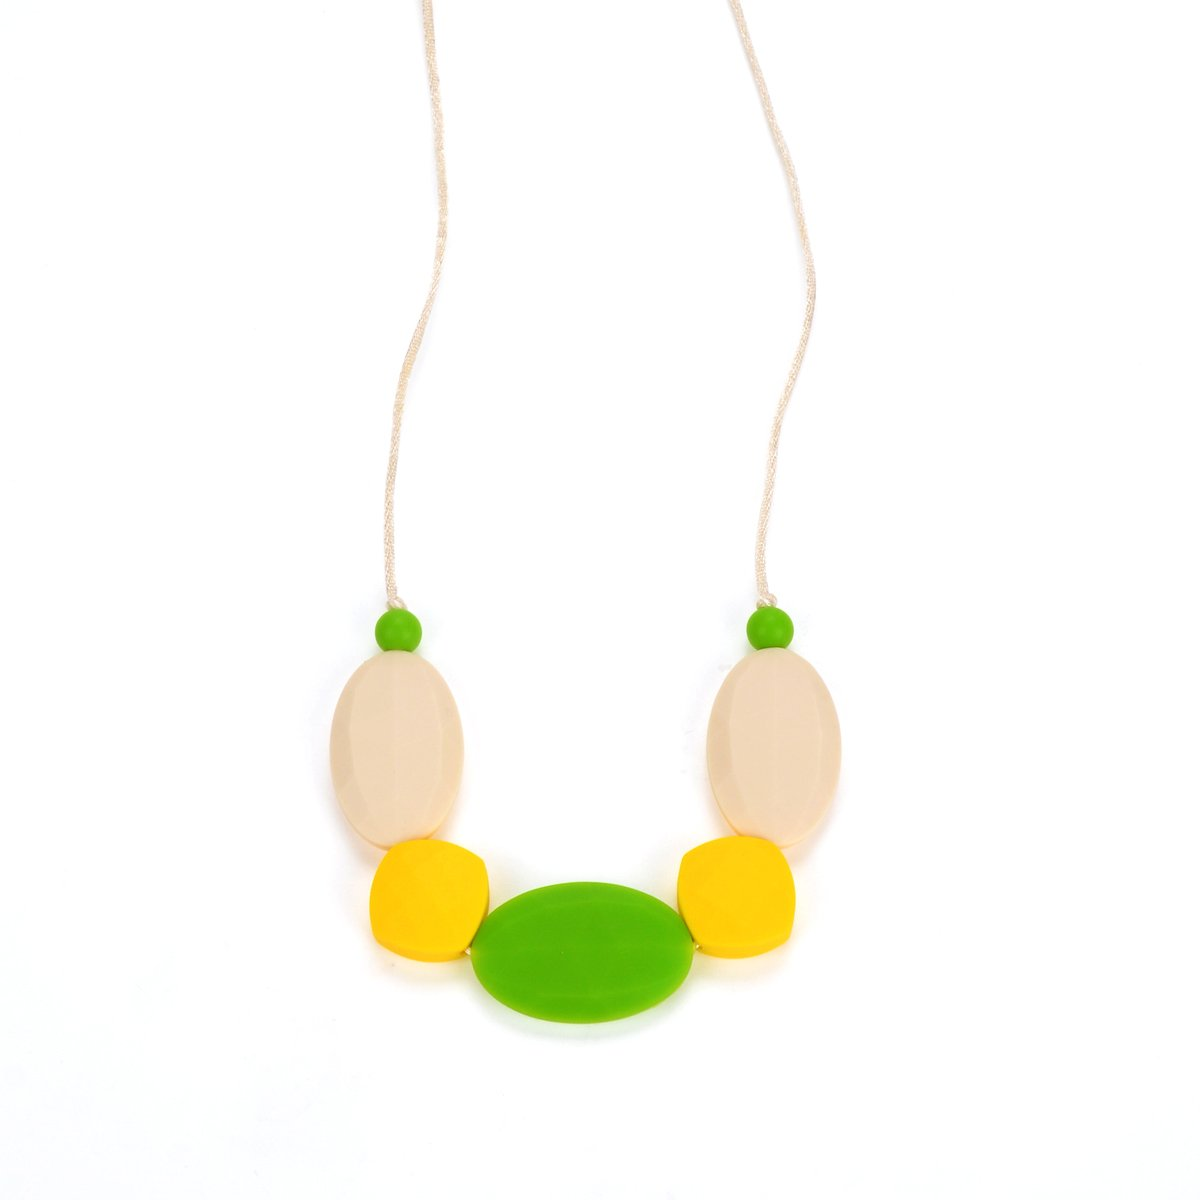 BEBE by Me Appletini Silicone Teething Necklace for Nursing Moms